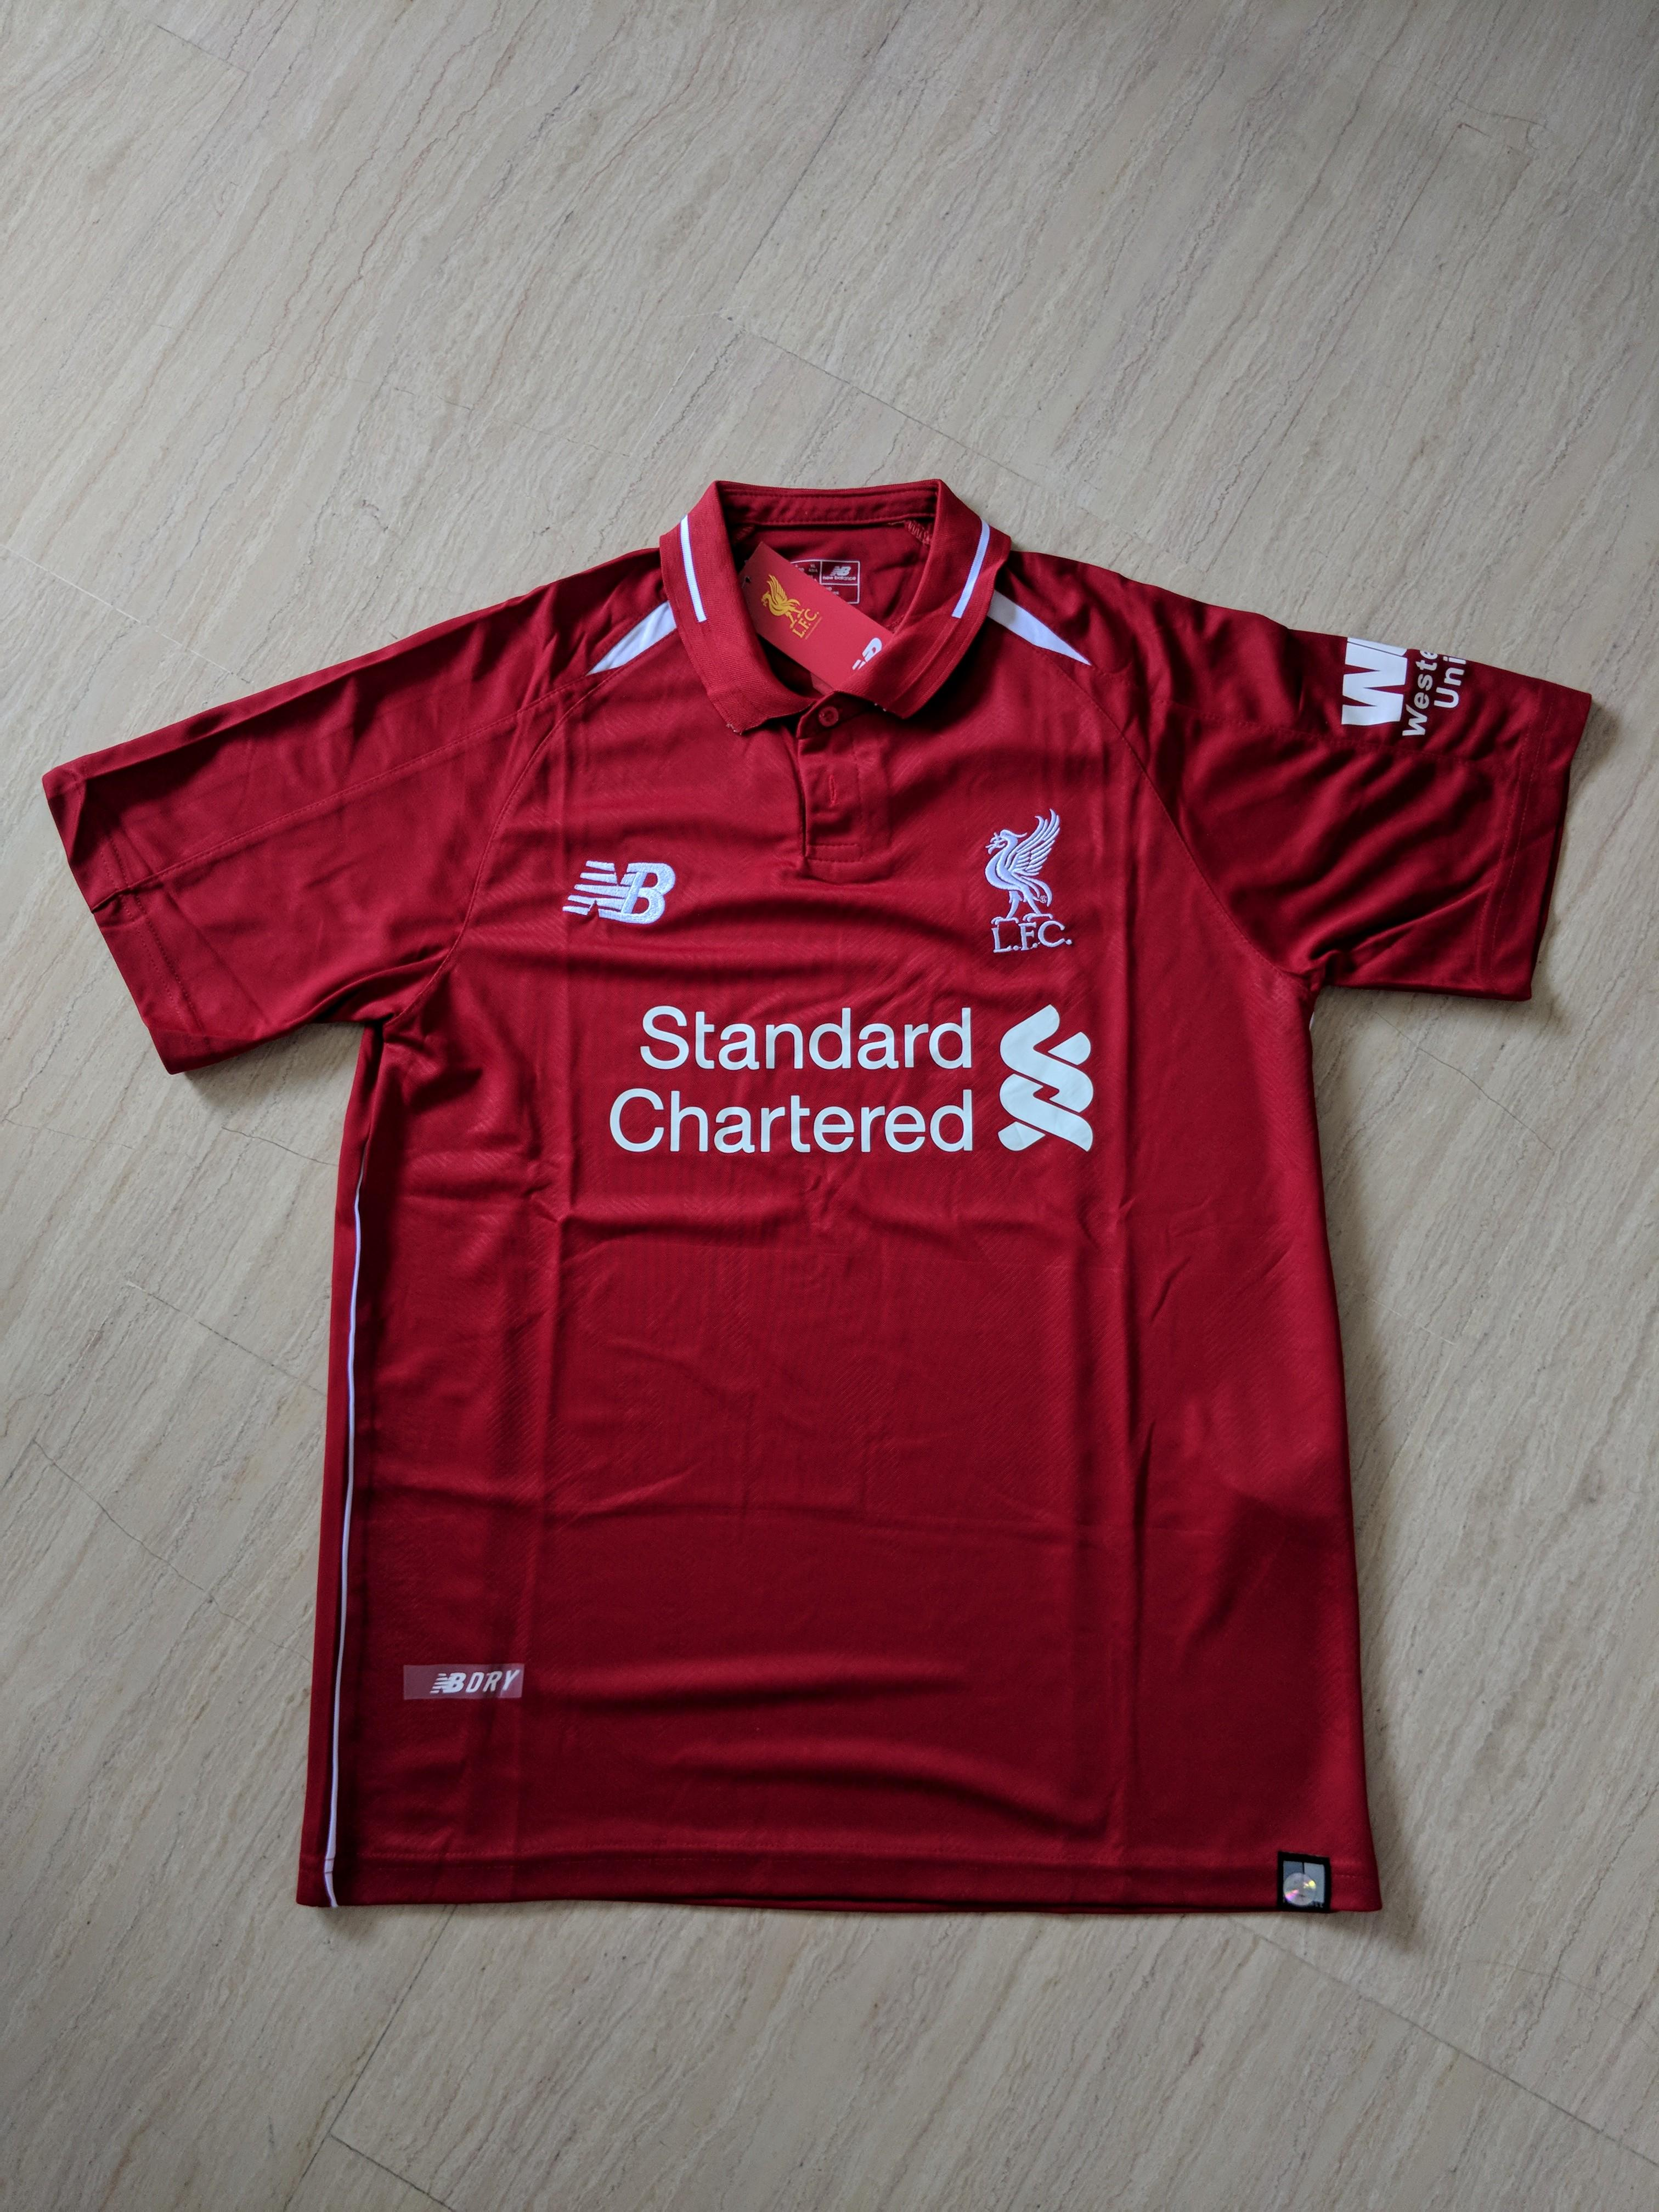 low priced 63d27 18949 INSTOCK) Liverpool 1819 jersey, Sports, Sports Apparel on ...